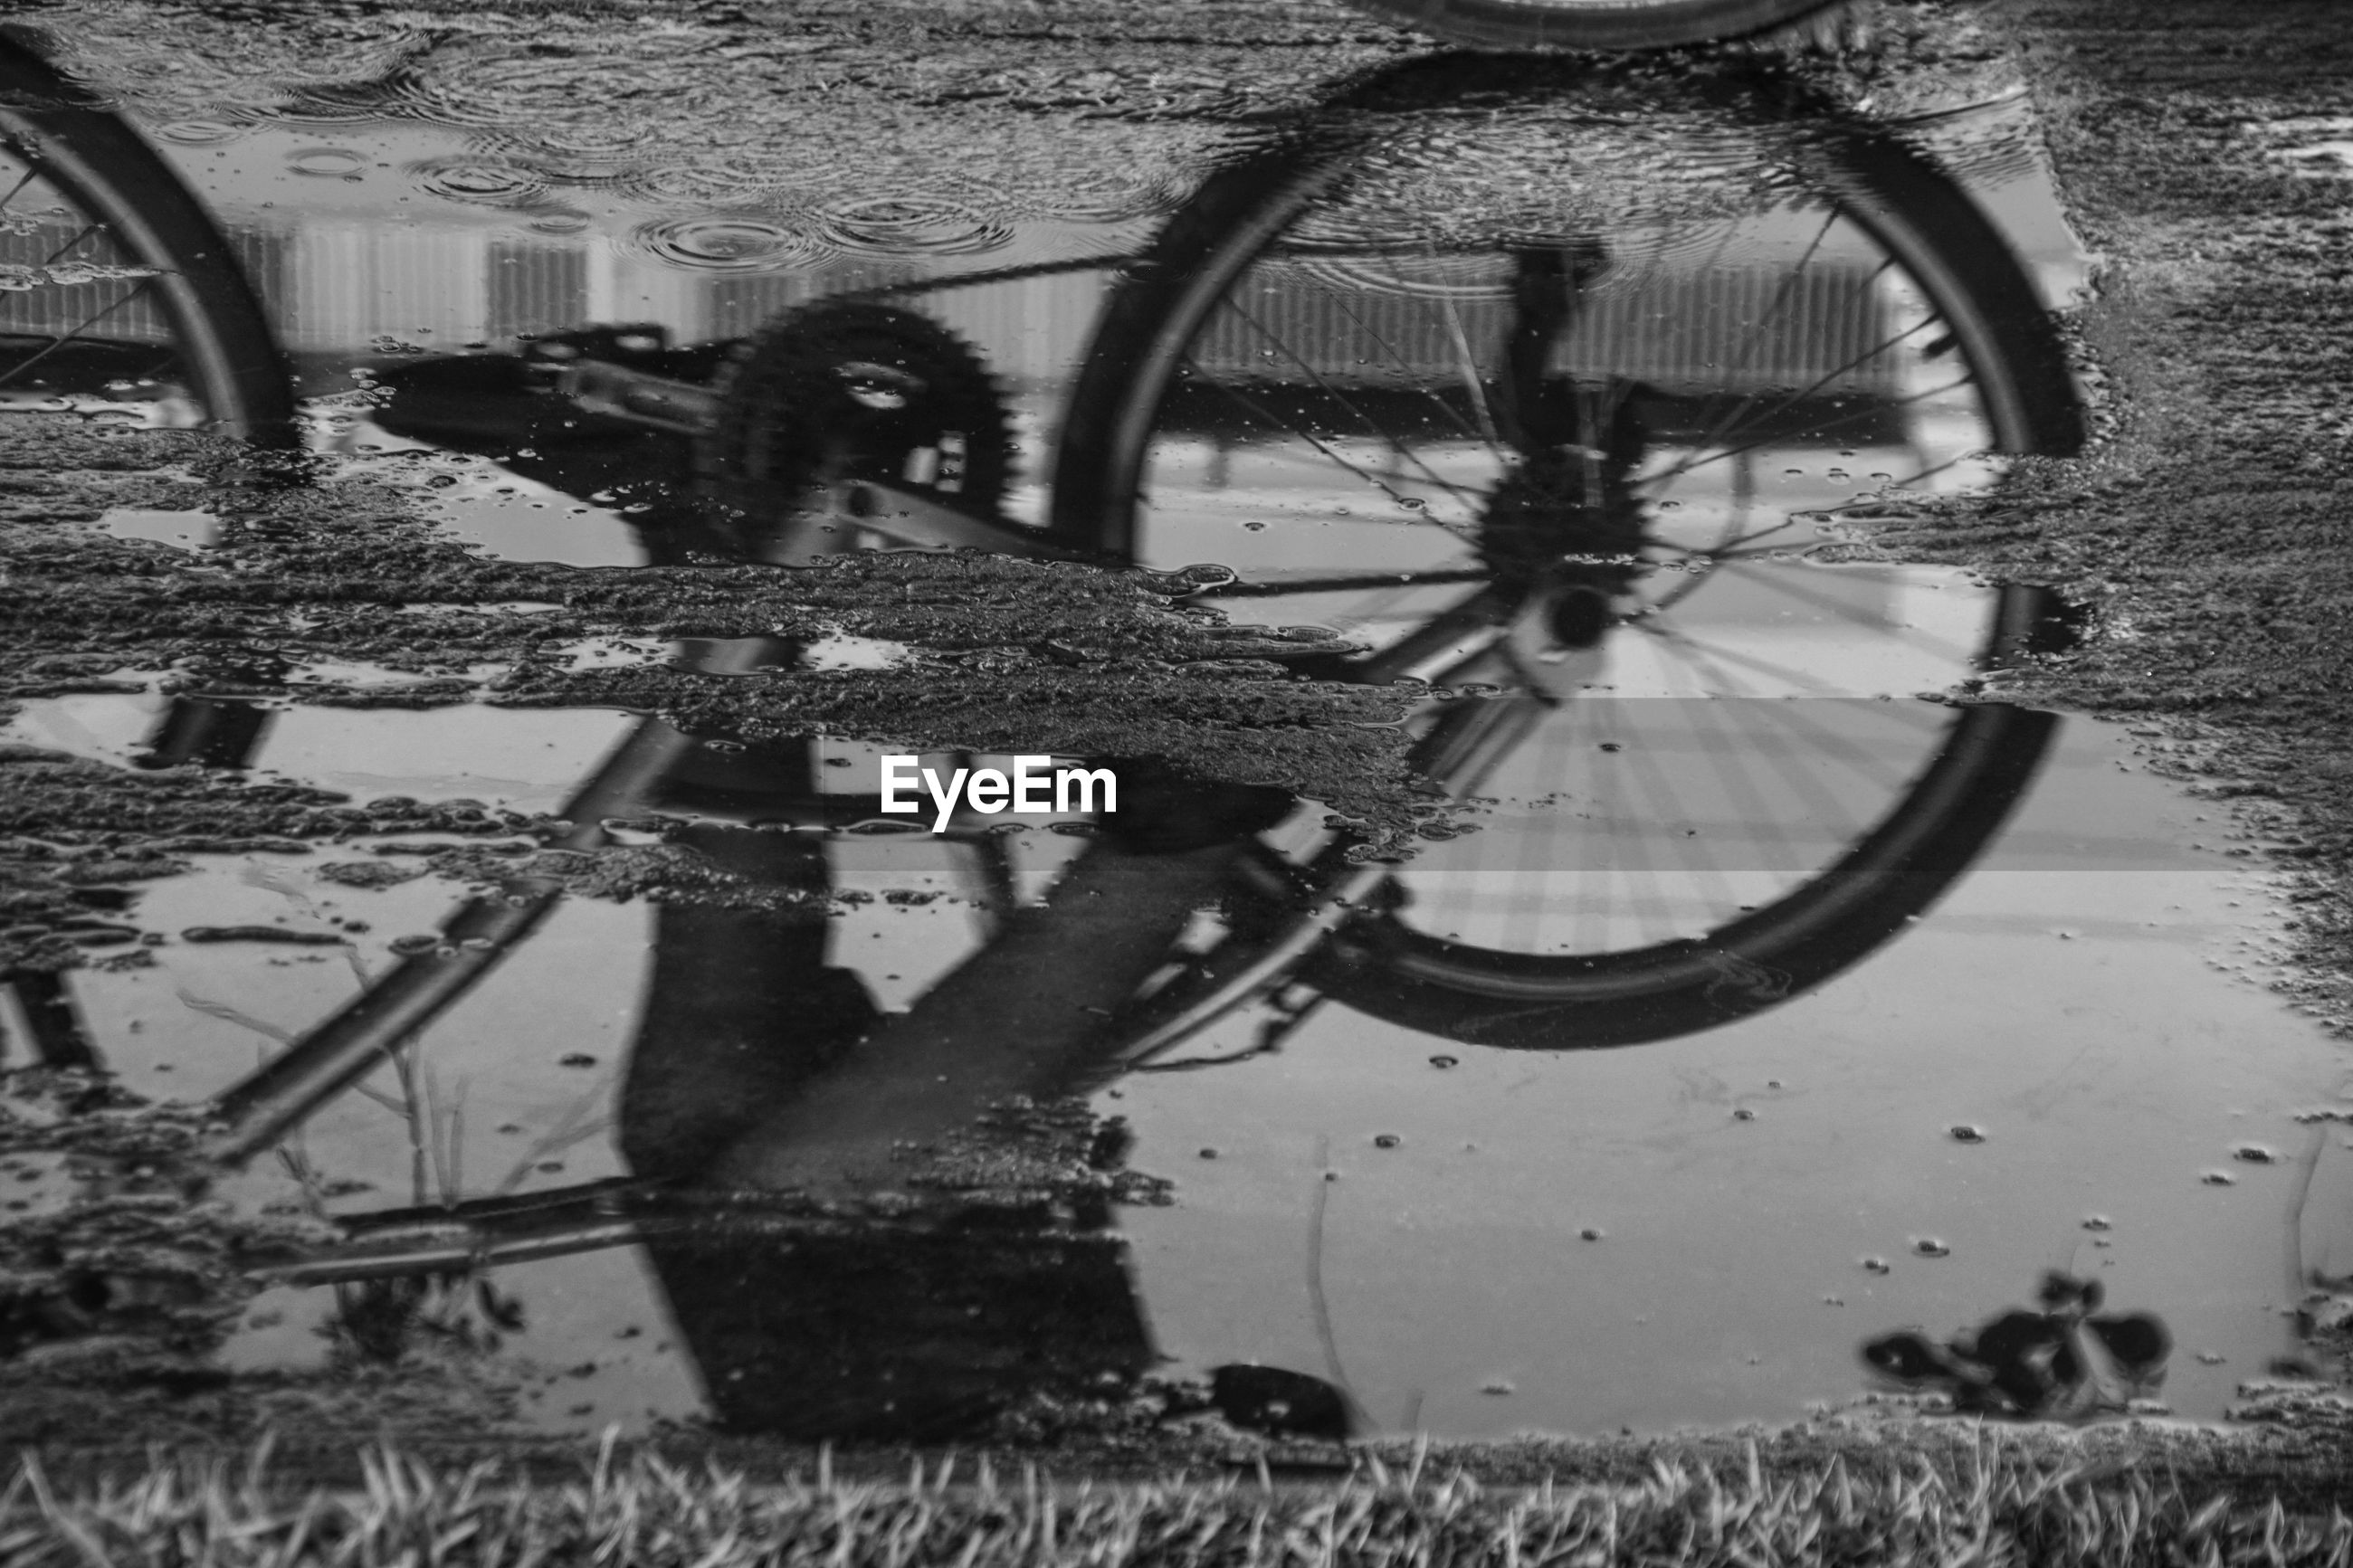 Reflection of bicycle on puddle